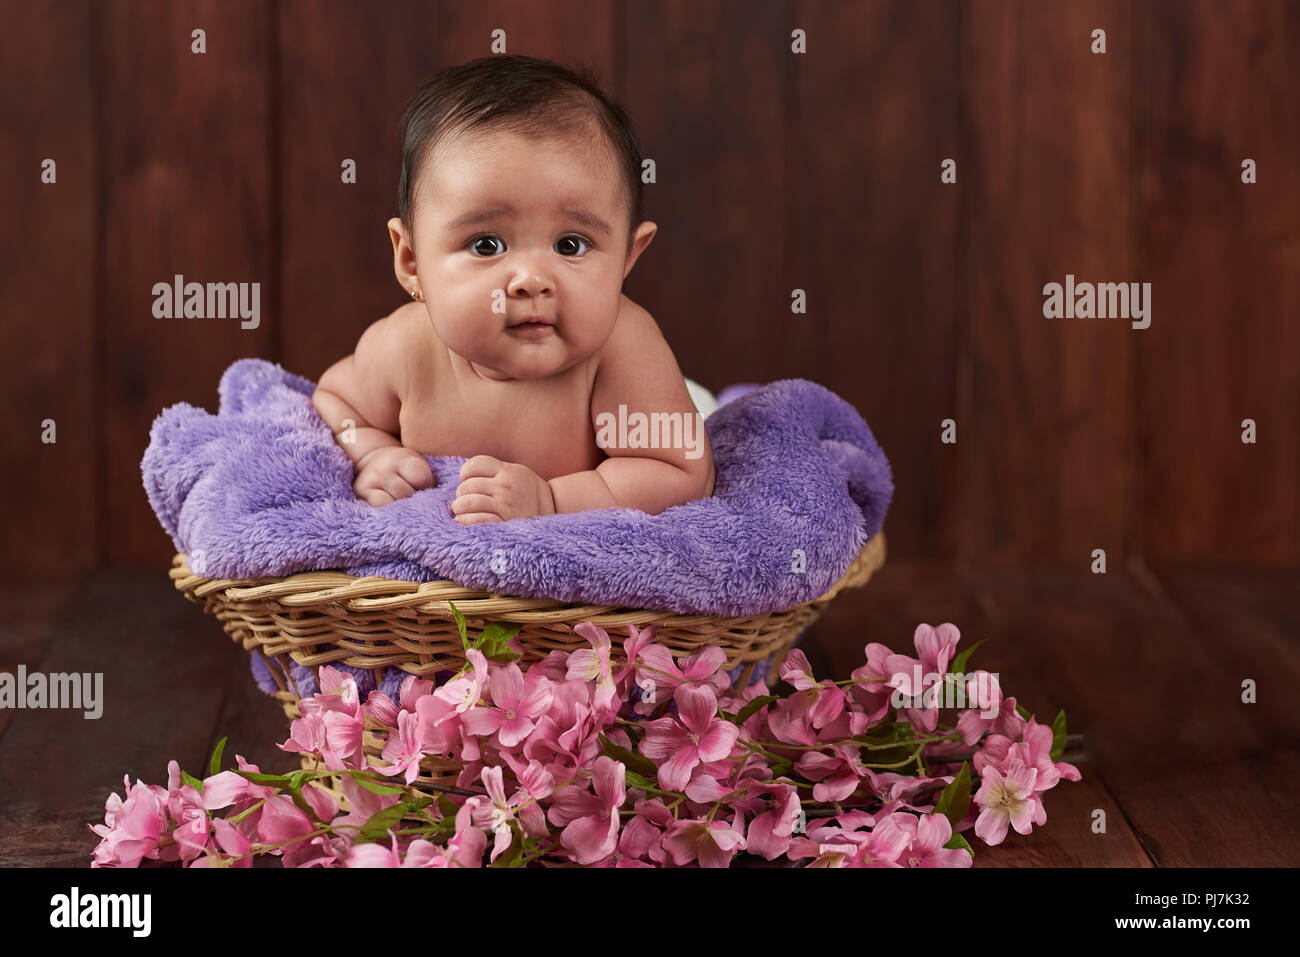 Smile Happy Cute Baby Girl On Dark Wooden Background Stock Photo